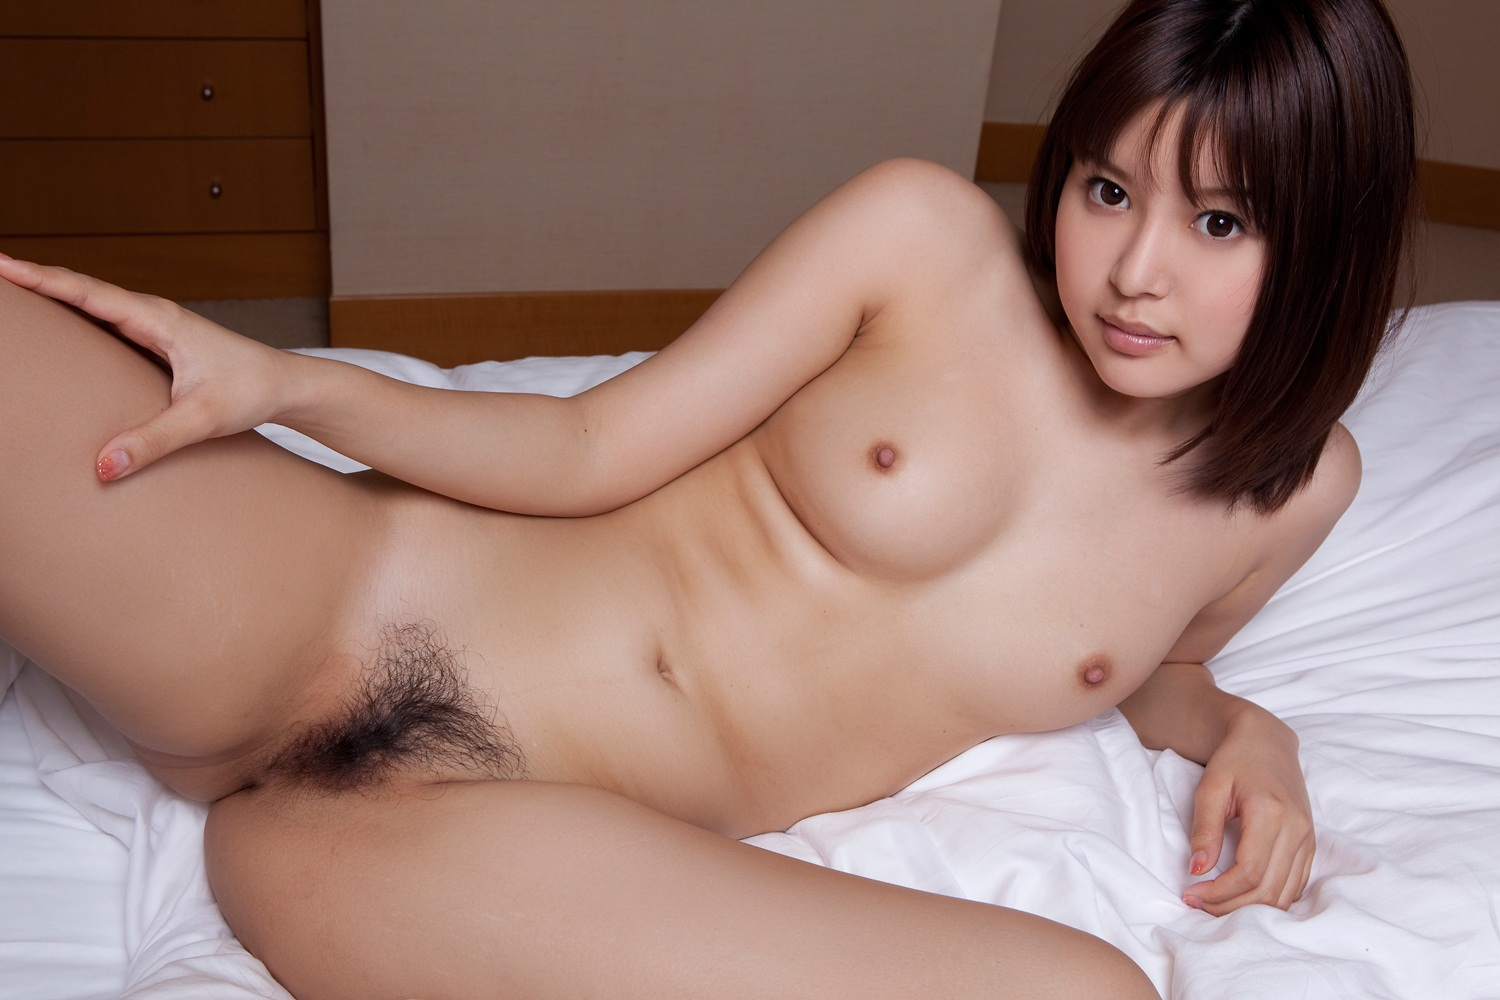 Honda misaki perfect japanese girl perfectly fucked dmm